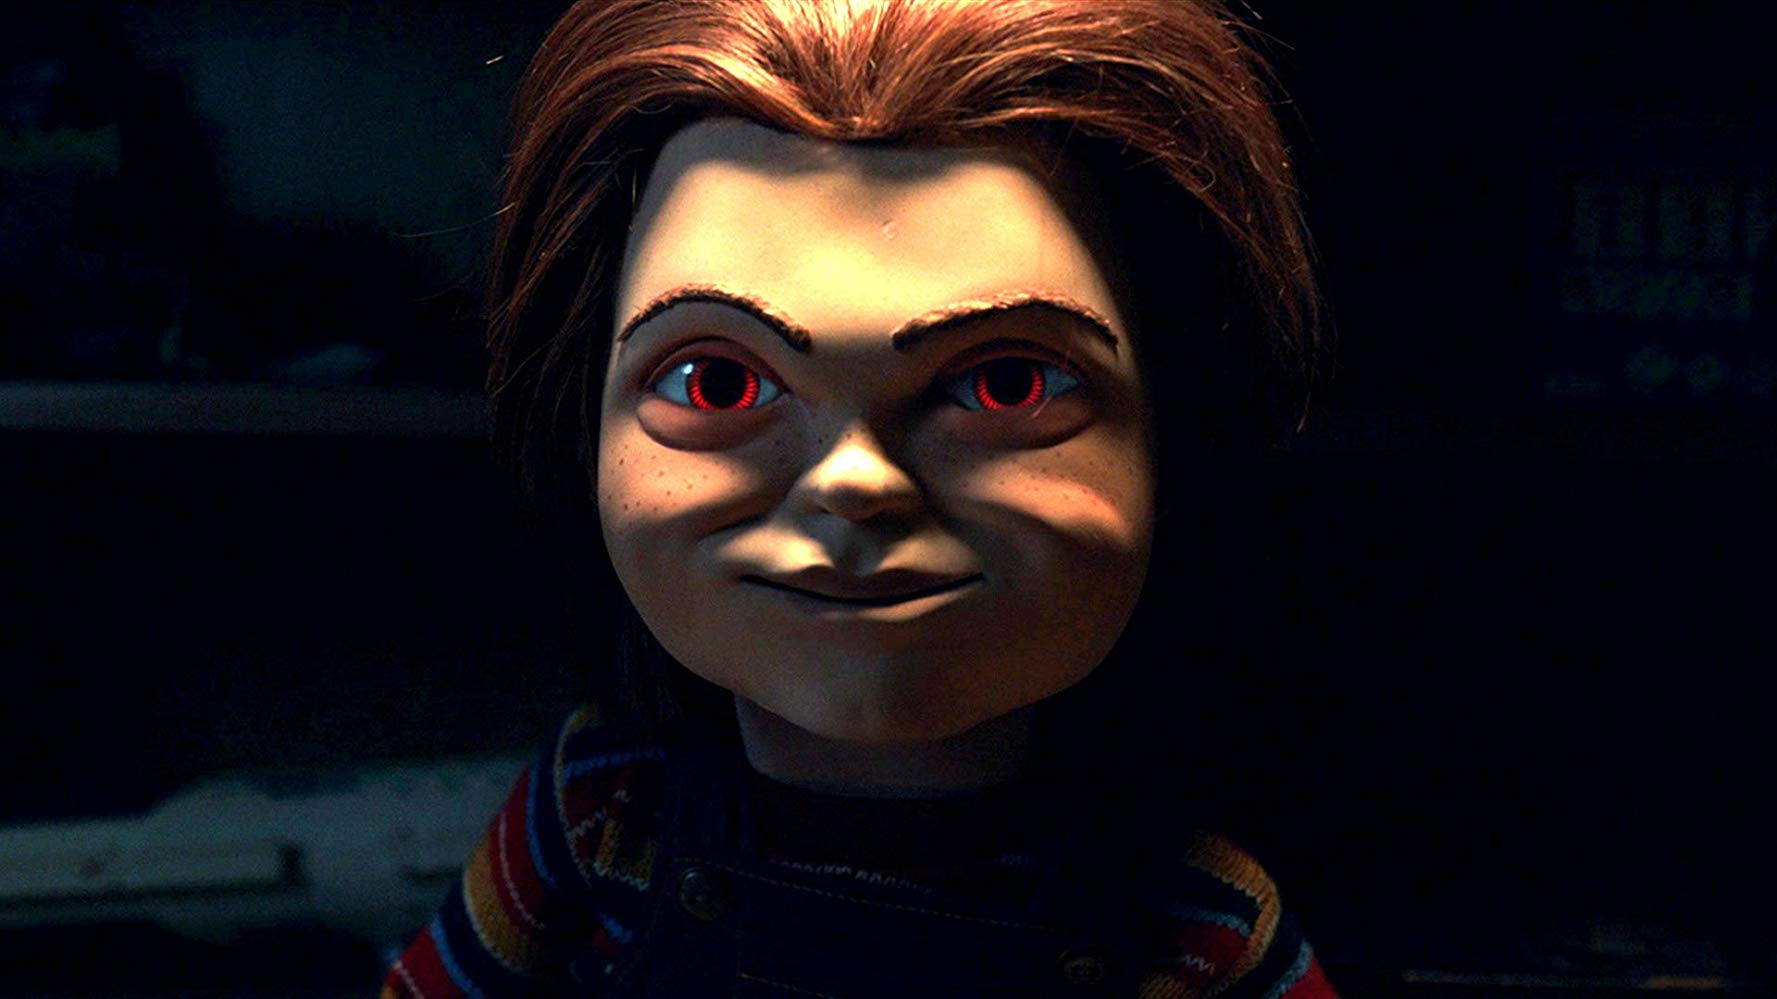 [News] CHILD'S PLAY Comes Home This September